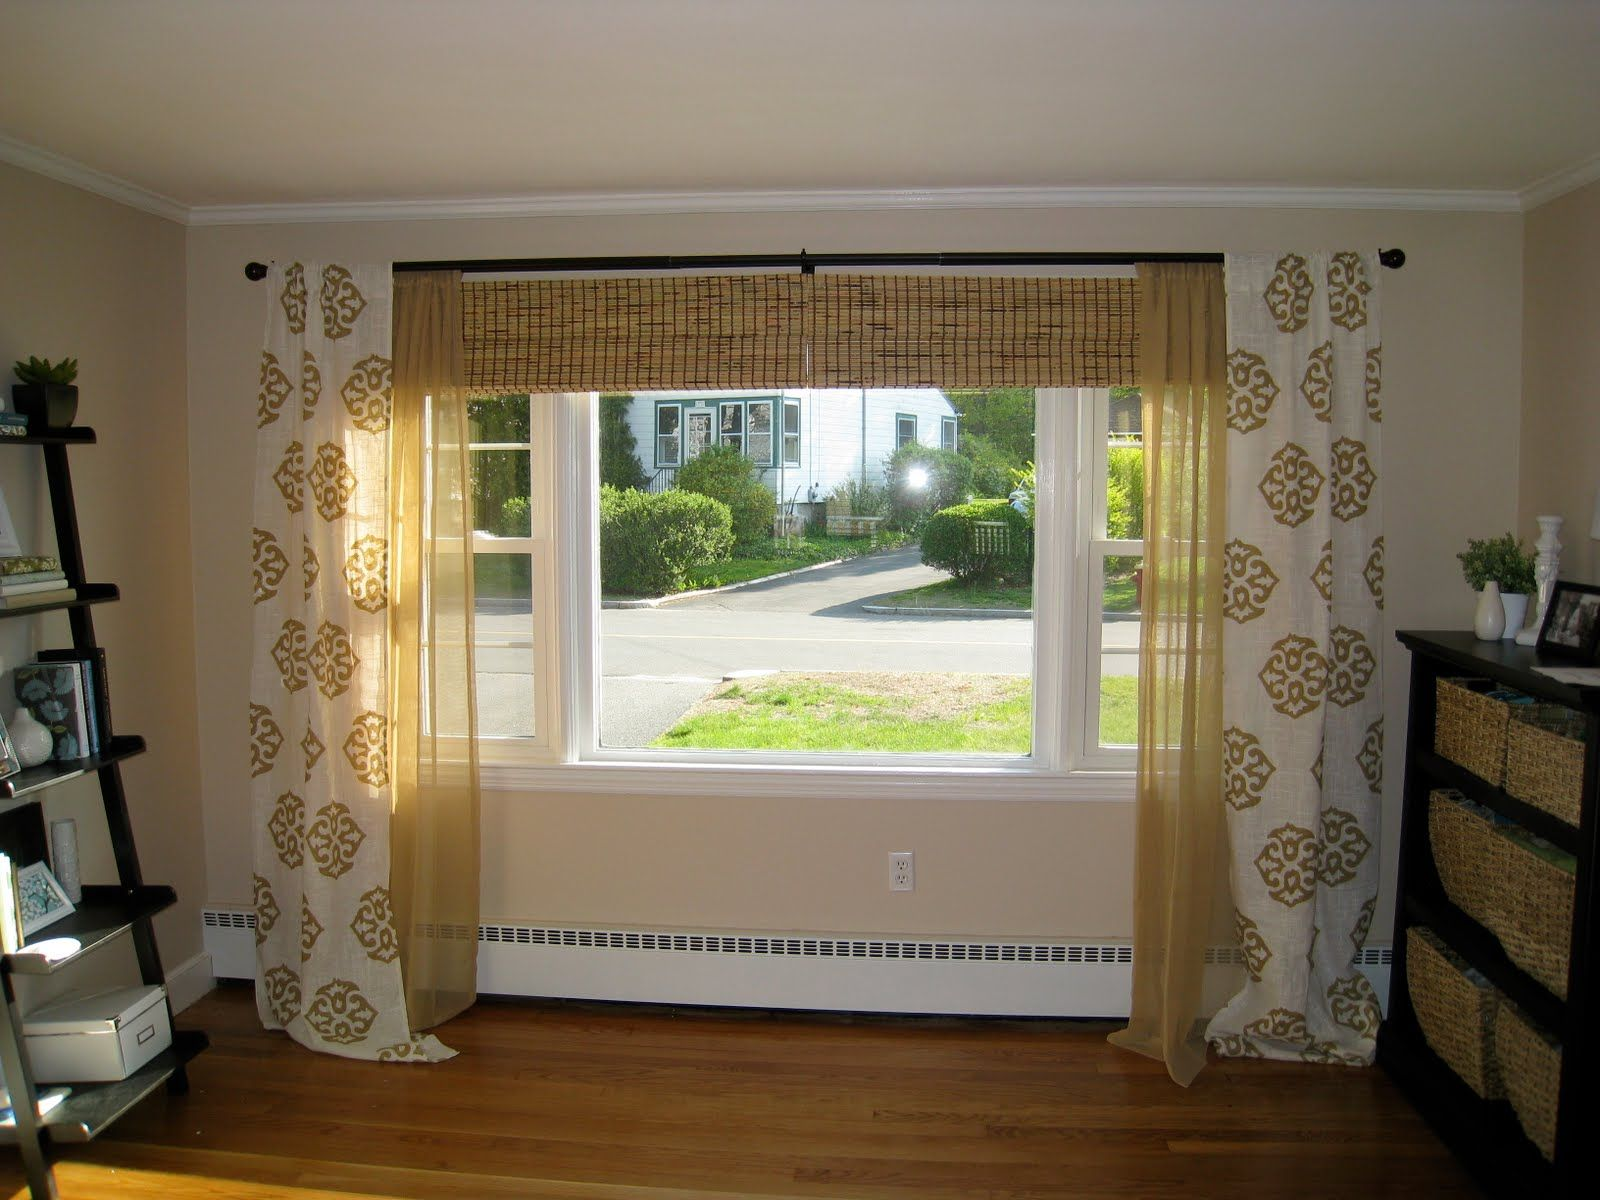 Top window treatment ideas for large windows - Window Ideas For Living Room Curtains Round 3